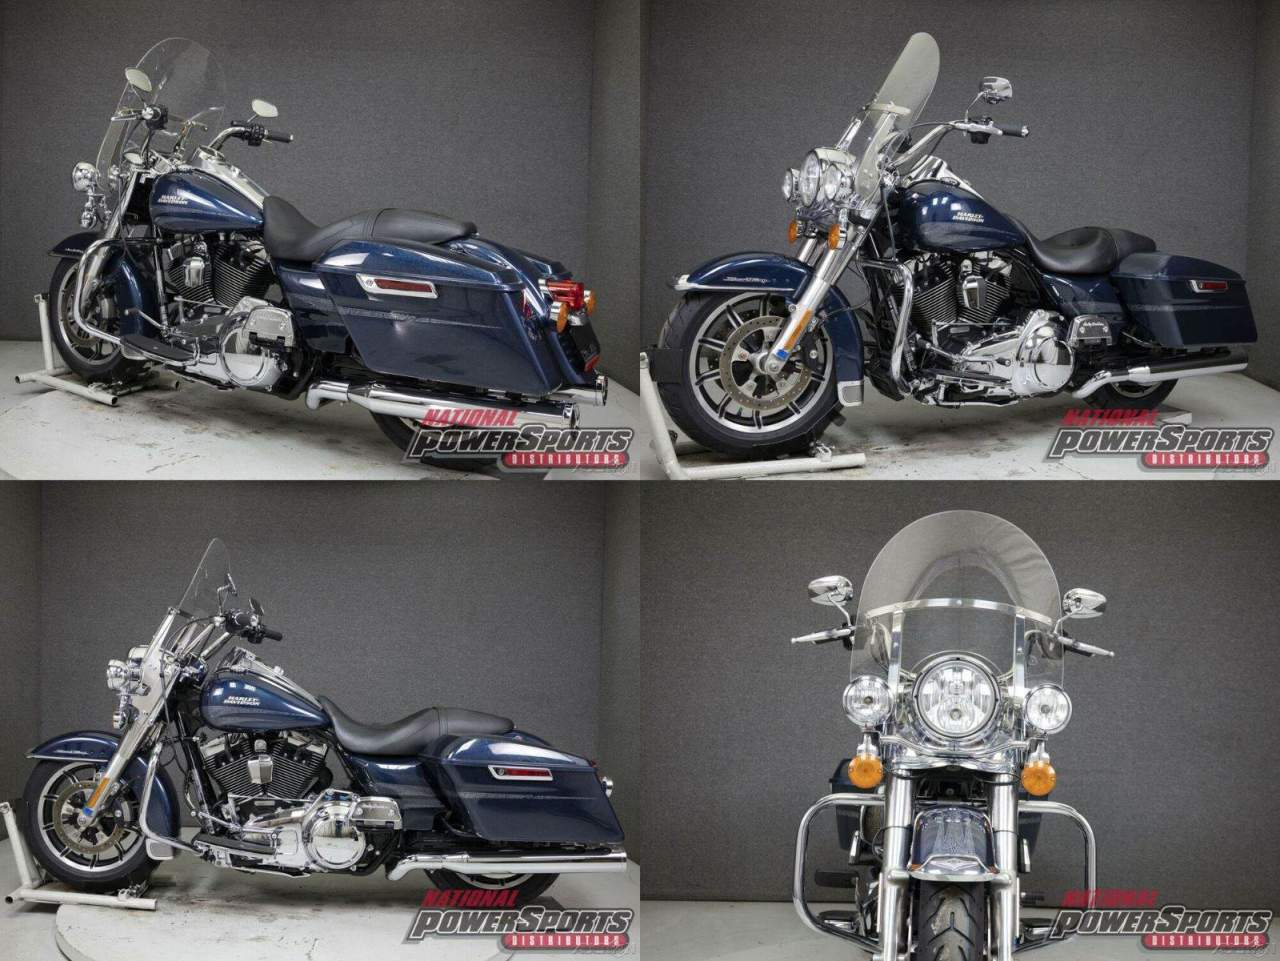 2016 Harley-Davidson Touring FLHR ROAD KING WABS COSMIC BLUE PEARL used for sale